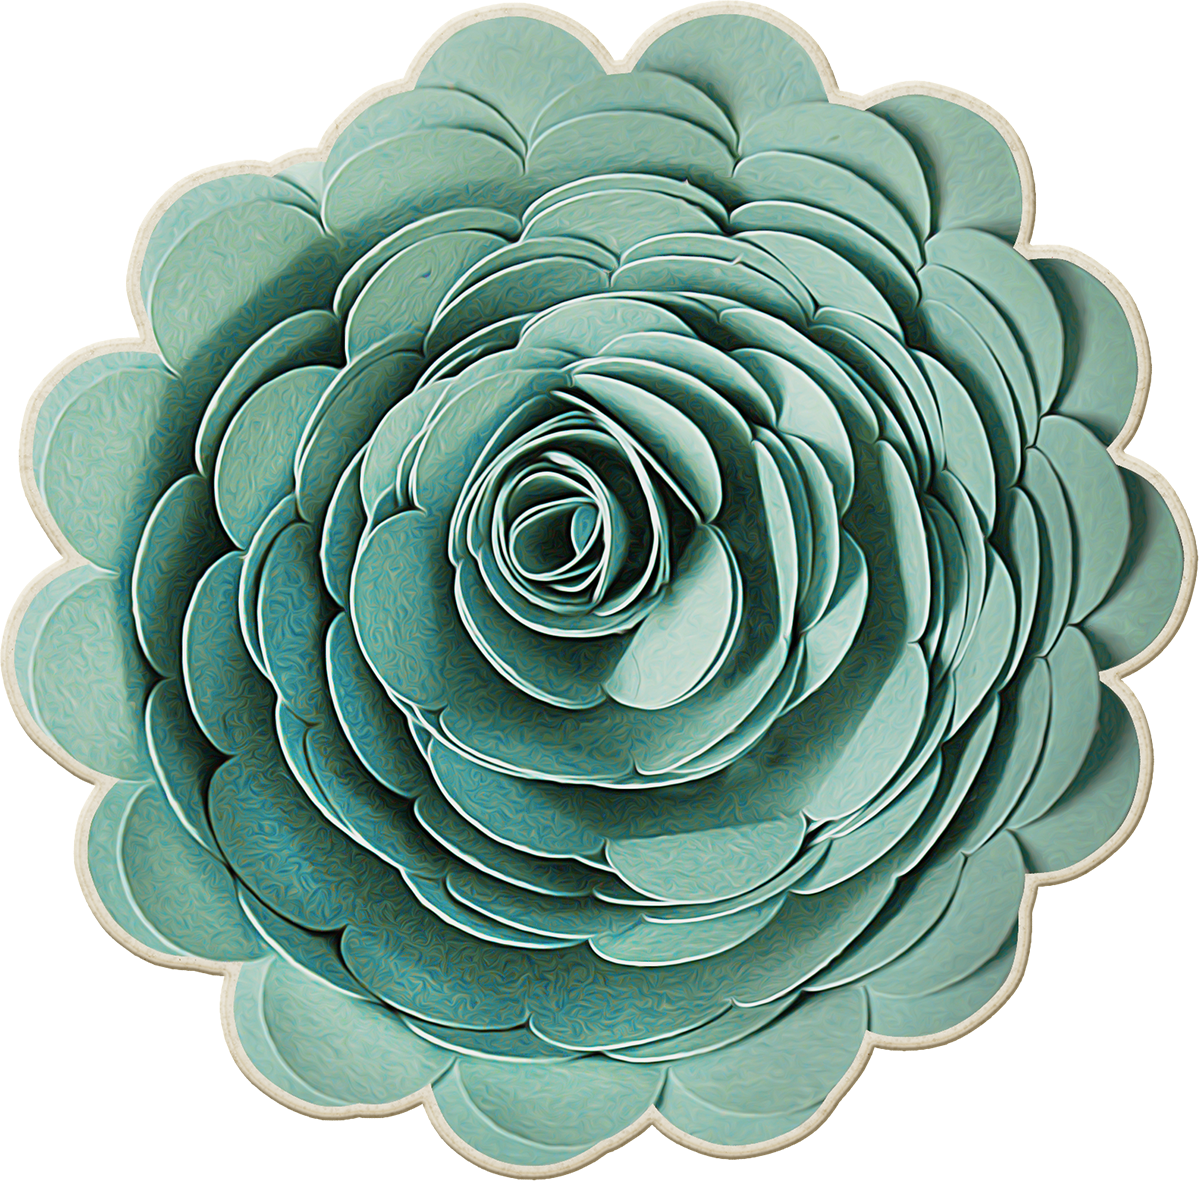 Paper flower png. Origami green flowers transprent